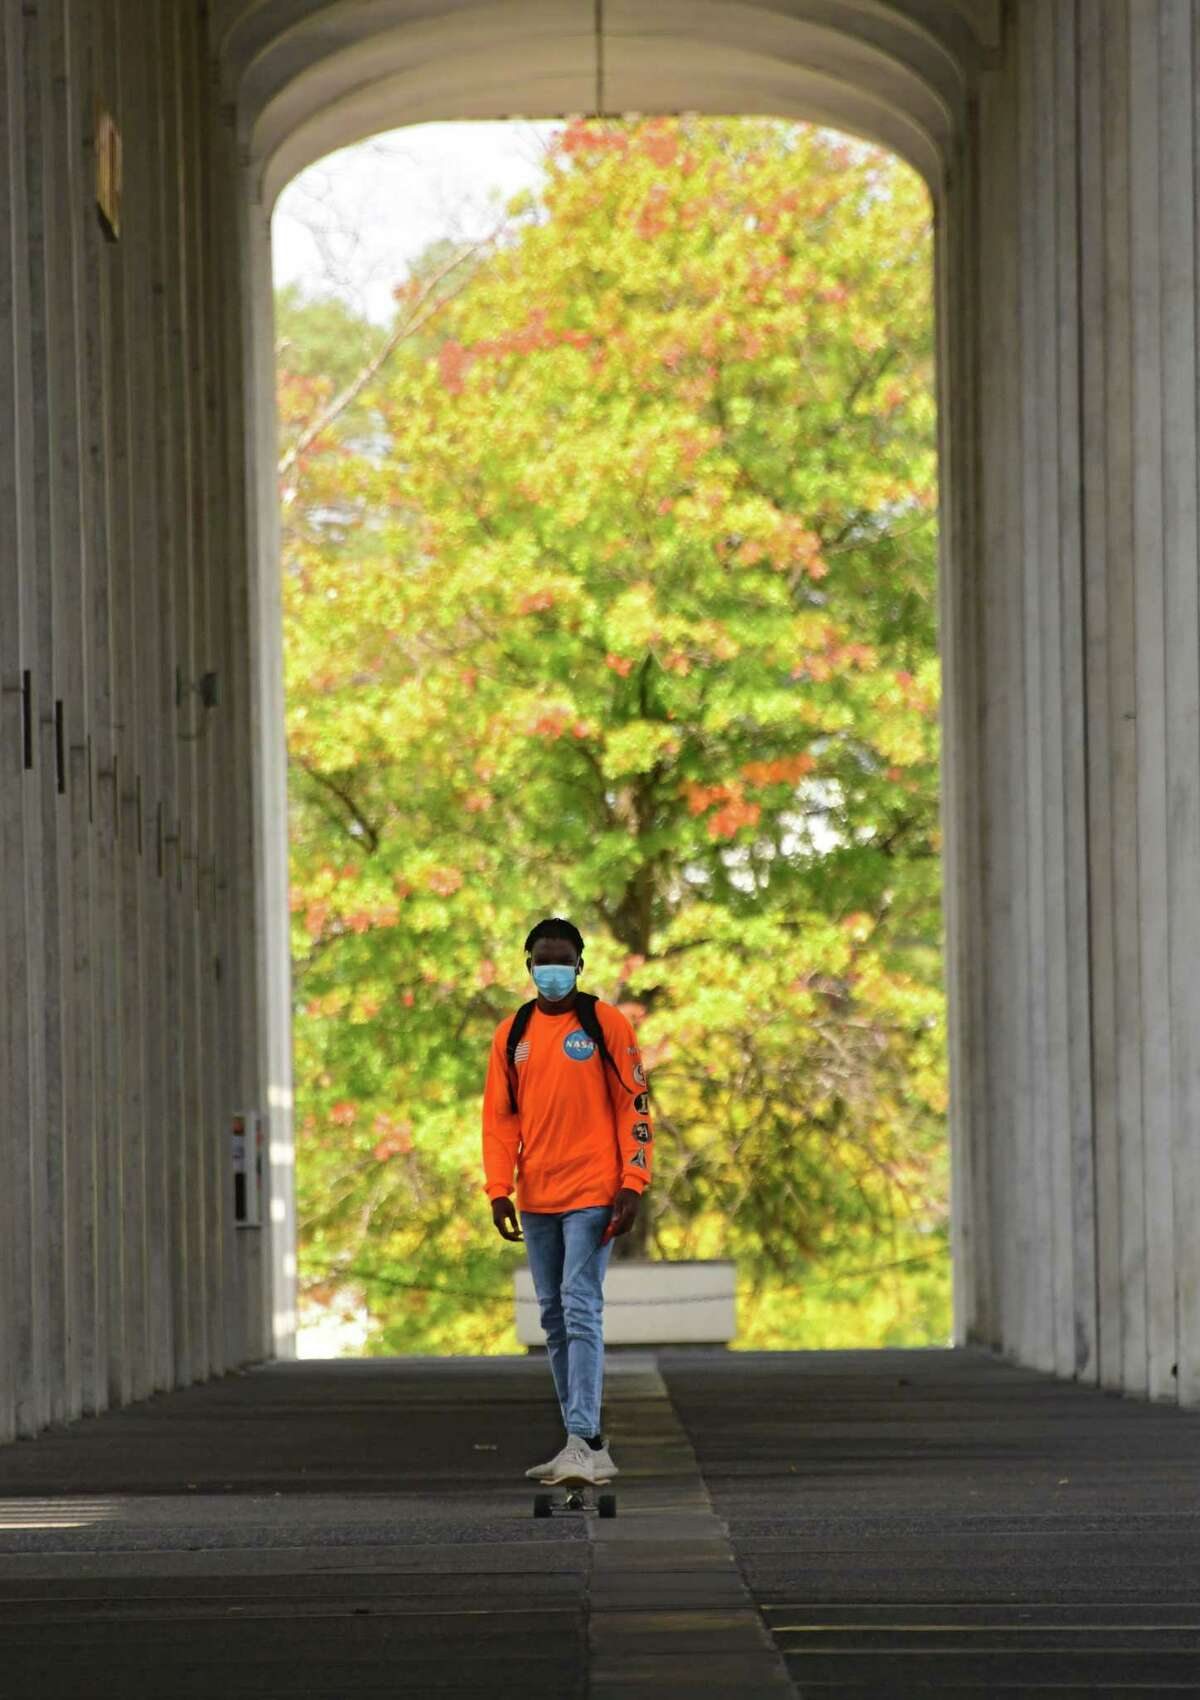 A student is seen skateboarding near the campus center of University at Albany on Friday, Sept. 25, 2020 in Albany, N.Y. (Lori Van Buren/Times Union)